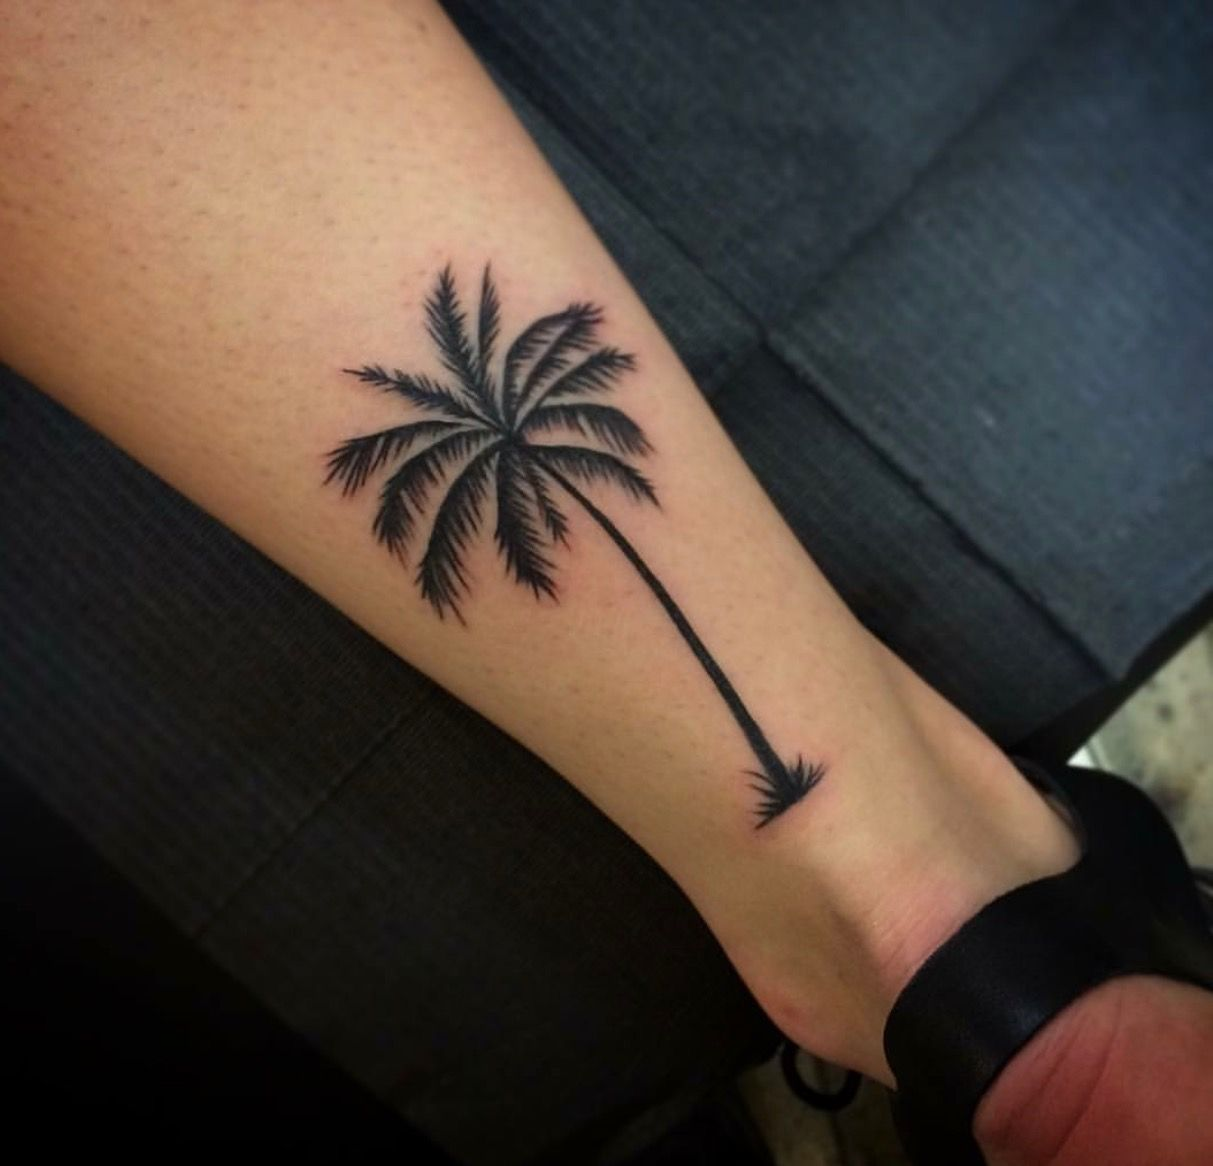 Pin By Tyler Mitchell On Tattoos Palm Tattoos Leg Tattoos Tree Tattoo Designs,Responsive Mobile Footer Design